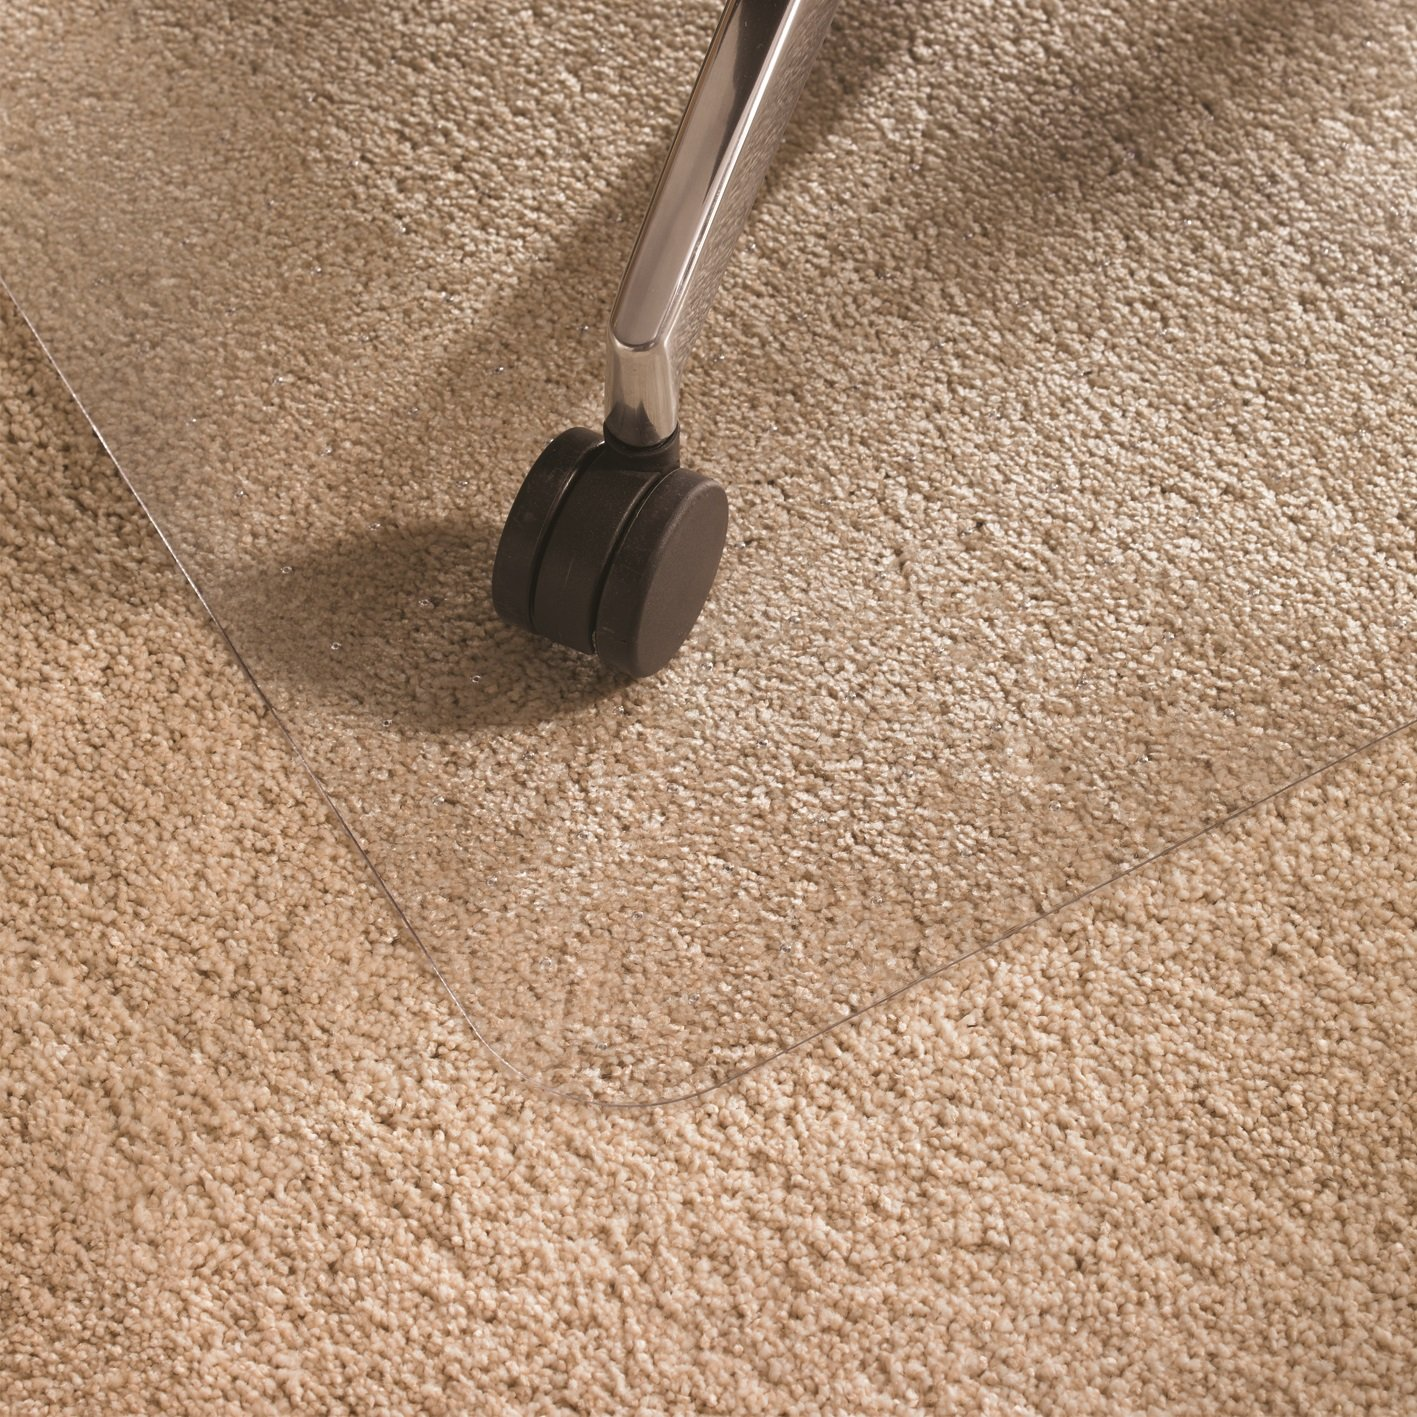 Cleartex Ultimat Chair Mat, Clear Polycarbonate, for Low/Medium Pile Carpets up to 1/2'', Rectangular with Lip, 48'' x 53'' (FR1113423LR) by Floortex (Image #3)